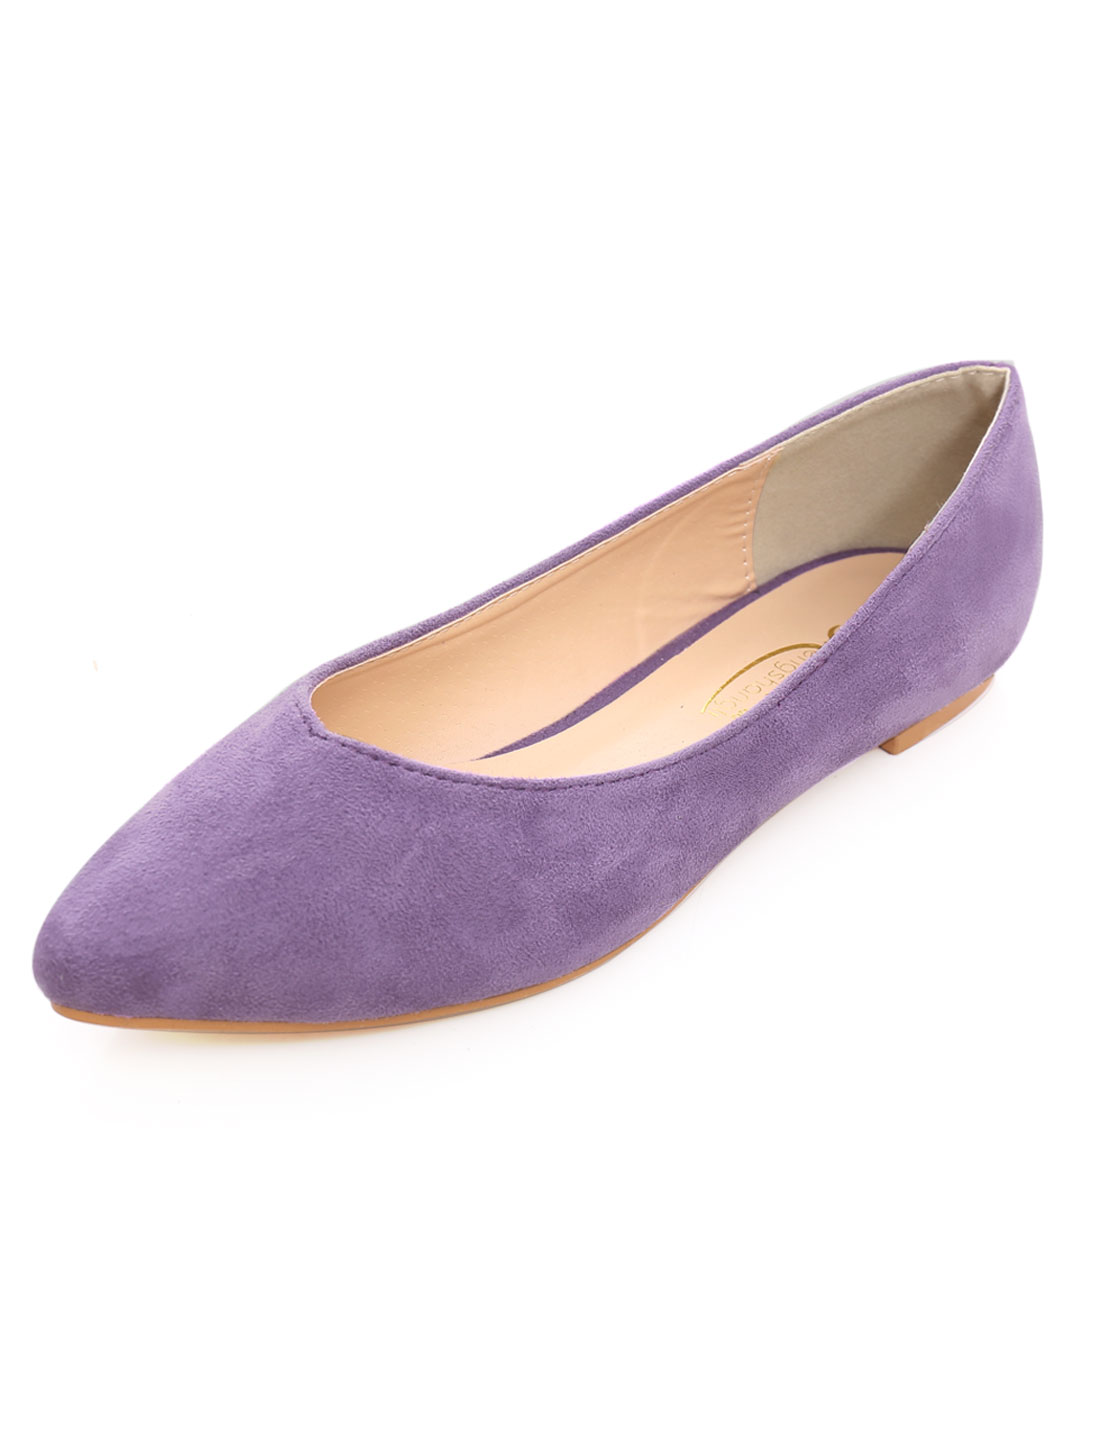 Woman Faux Suede Pointed Comfort Shoes Ballet Flat Purple US 9-9.5